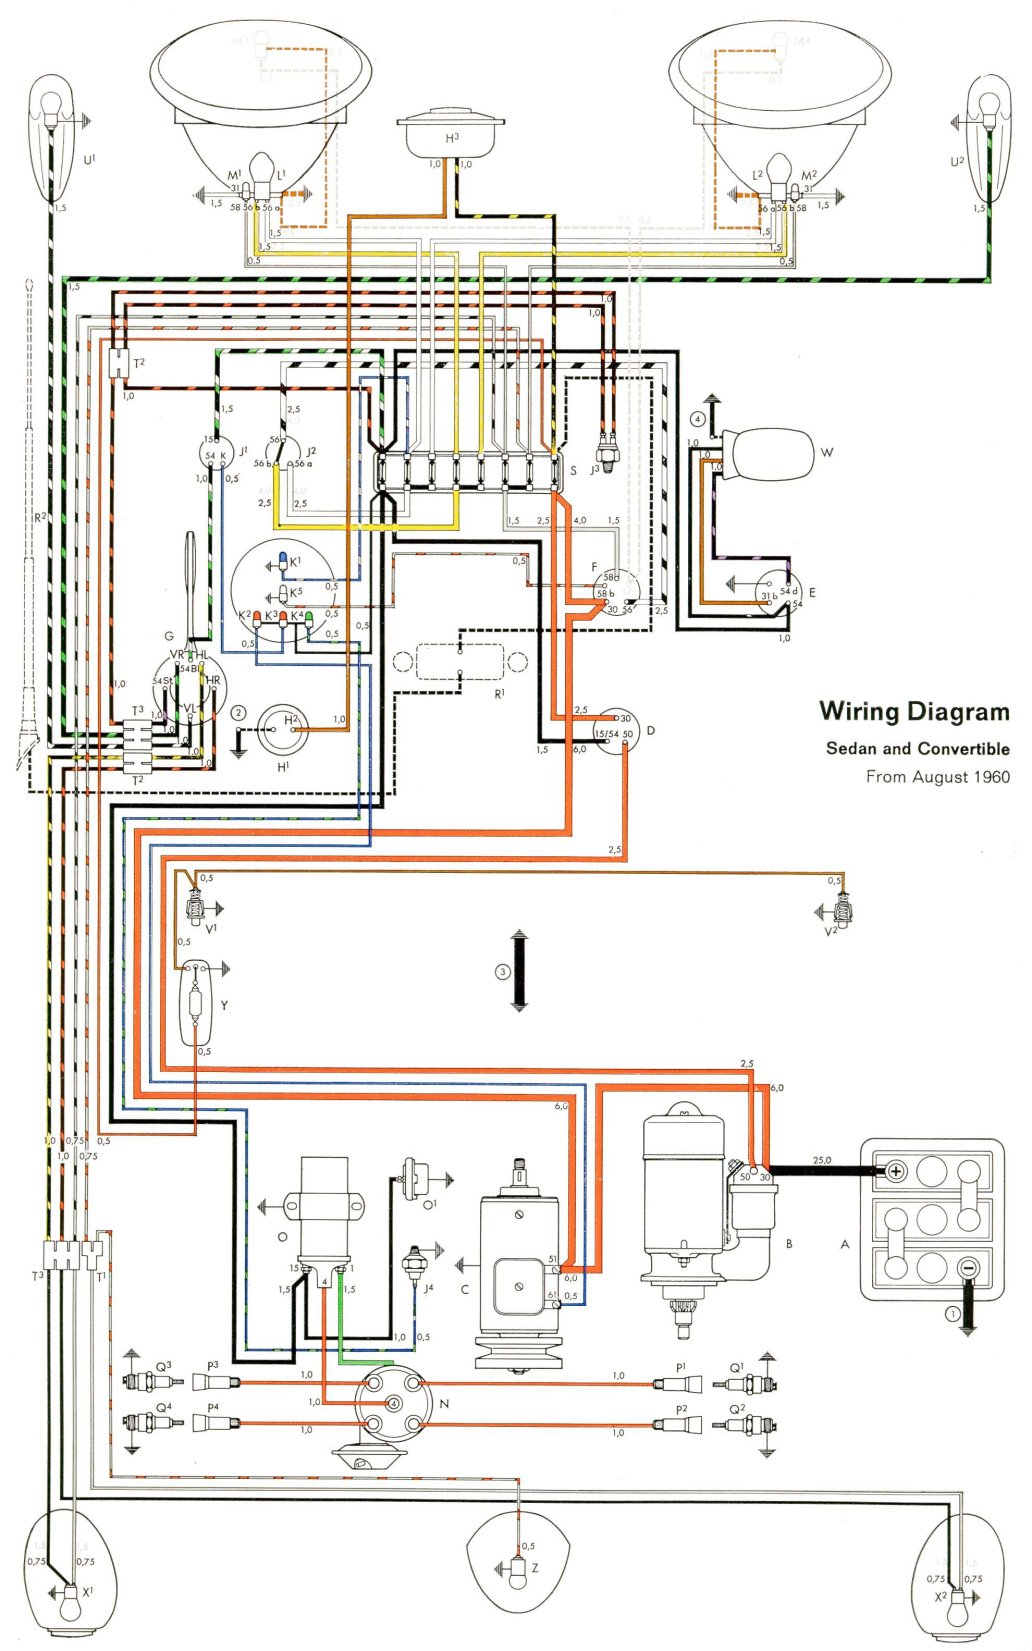 1960 Vw Bus Wiring Diagram - Explore Schematic Wiring Diagram •  Volkswagen Wiring Schematic on engine schematics, plumbing schematics, transmission schematics, transformer schematics, amplifier schematics, wire schematics, ford diagrams schematics, circuit schematics, electronics schematics, ignition schematics, generator schematics, piping schematics, ecu schematics, ductwork schematics, motor schematics, computer schematics, electrical schematics, tube amp schematics, engineering schematics, design schematics,